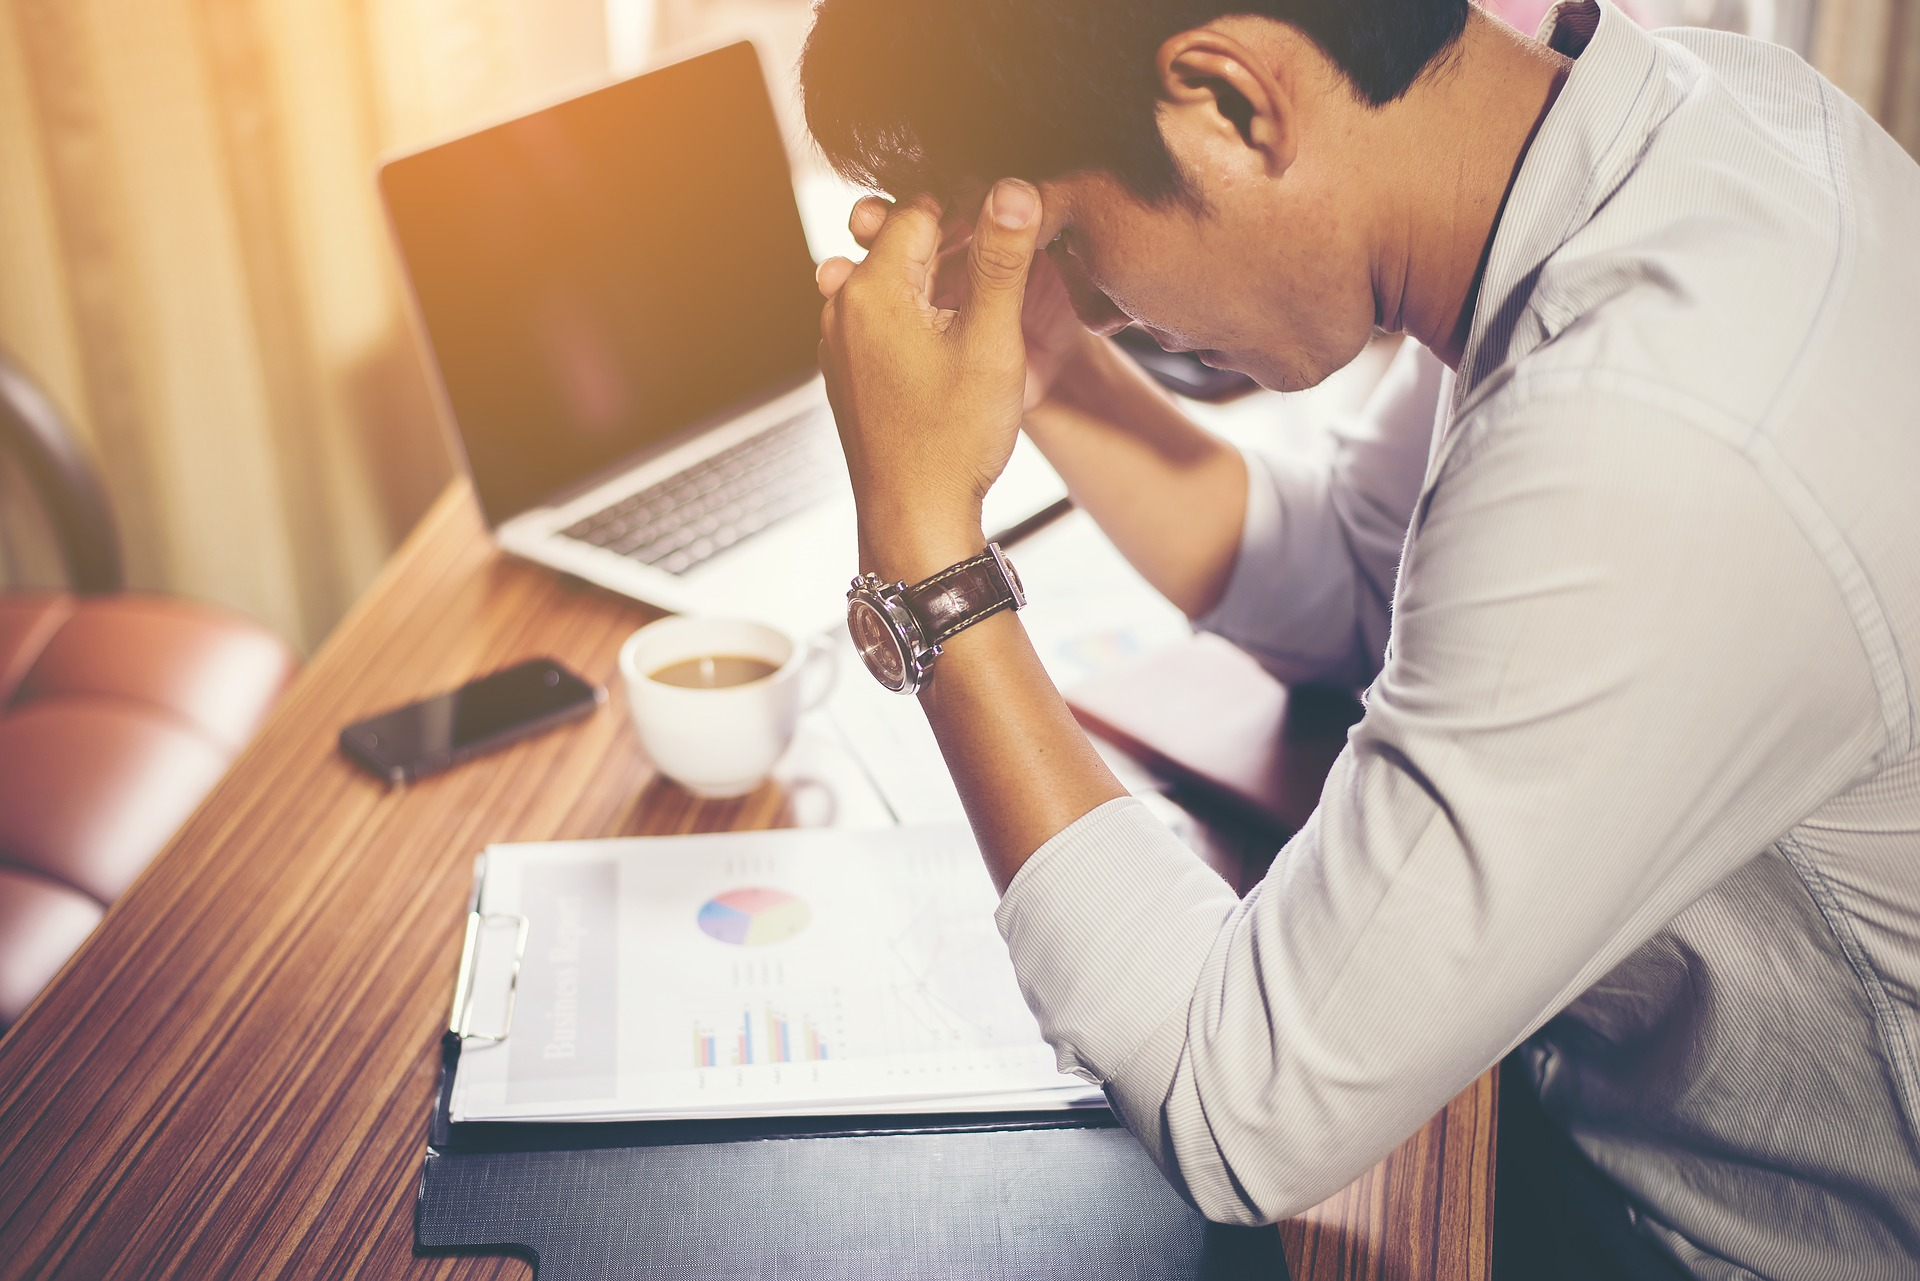 Handling Stress at Work - A Guide for Managers